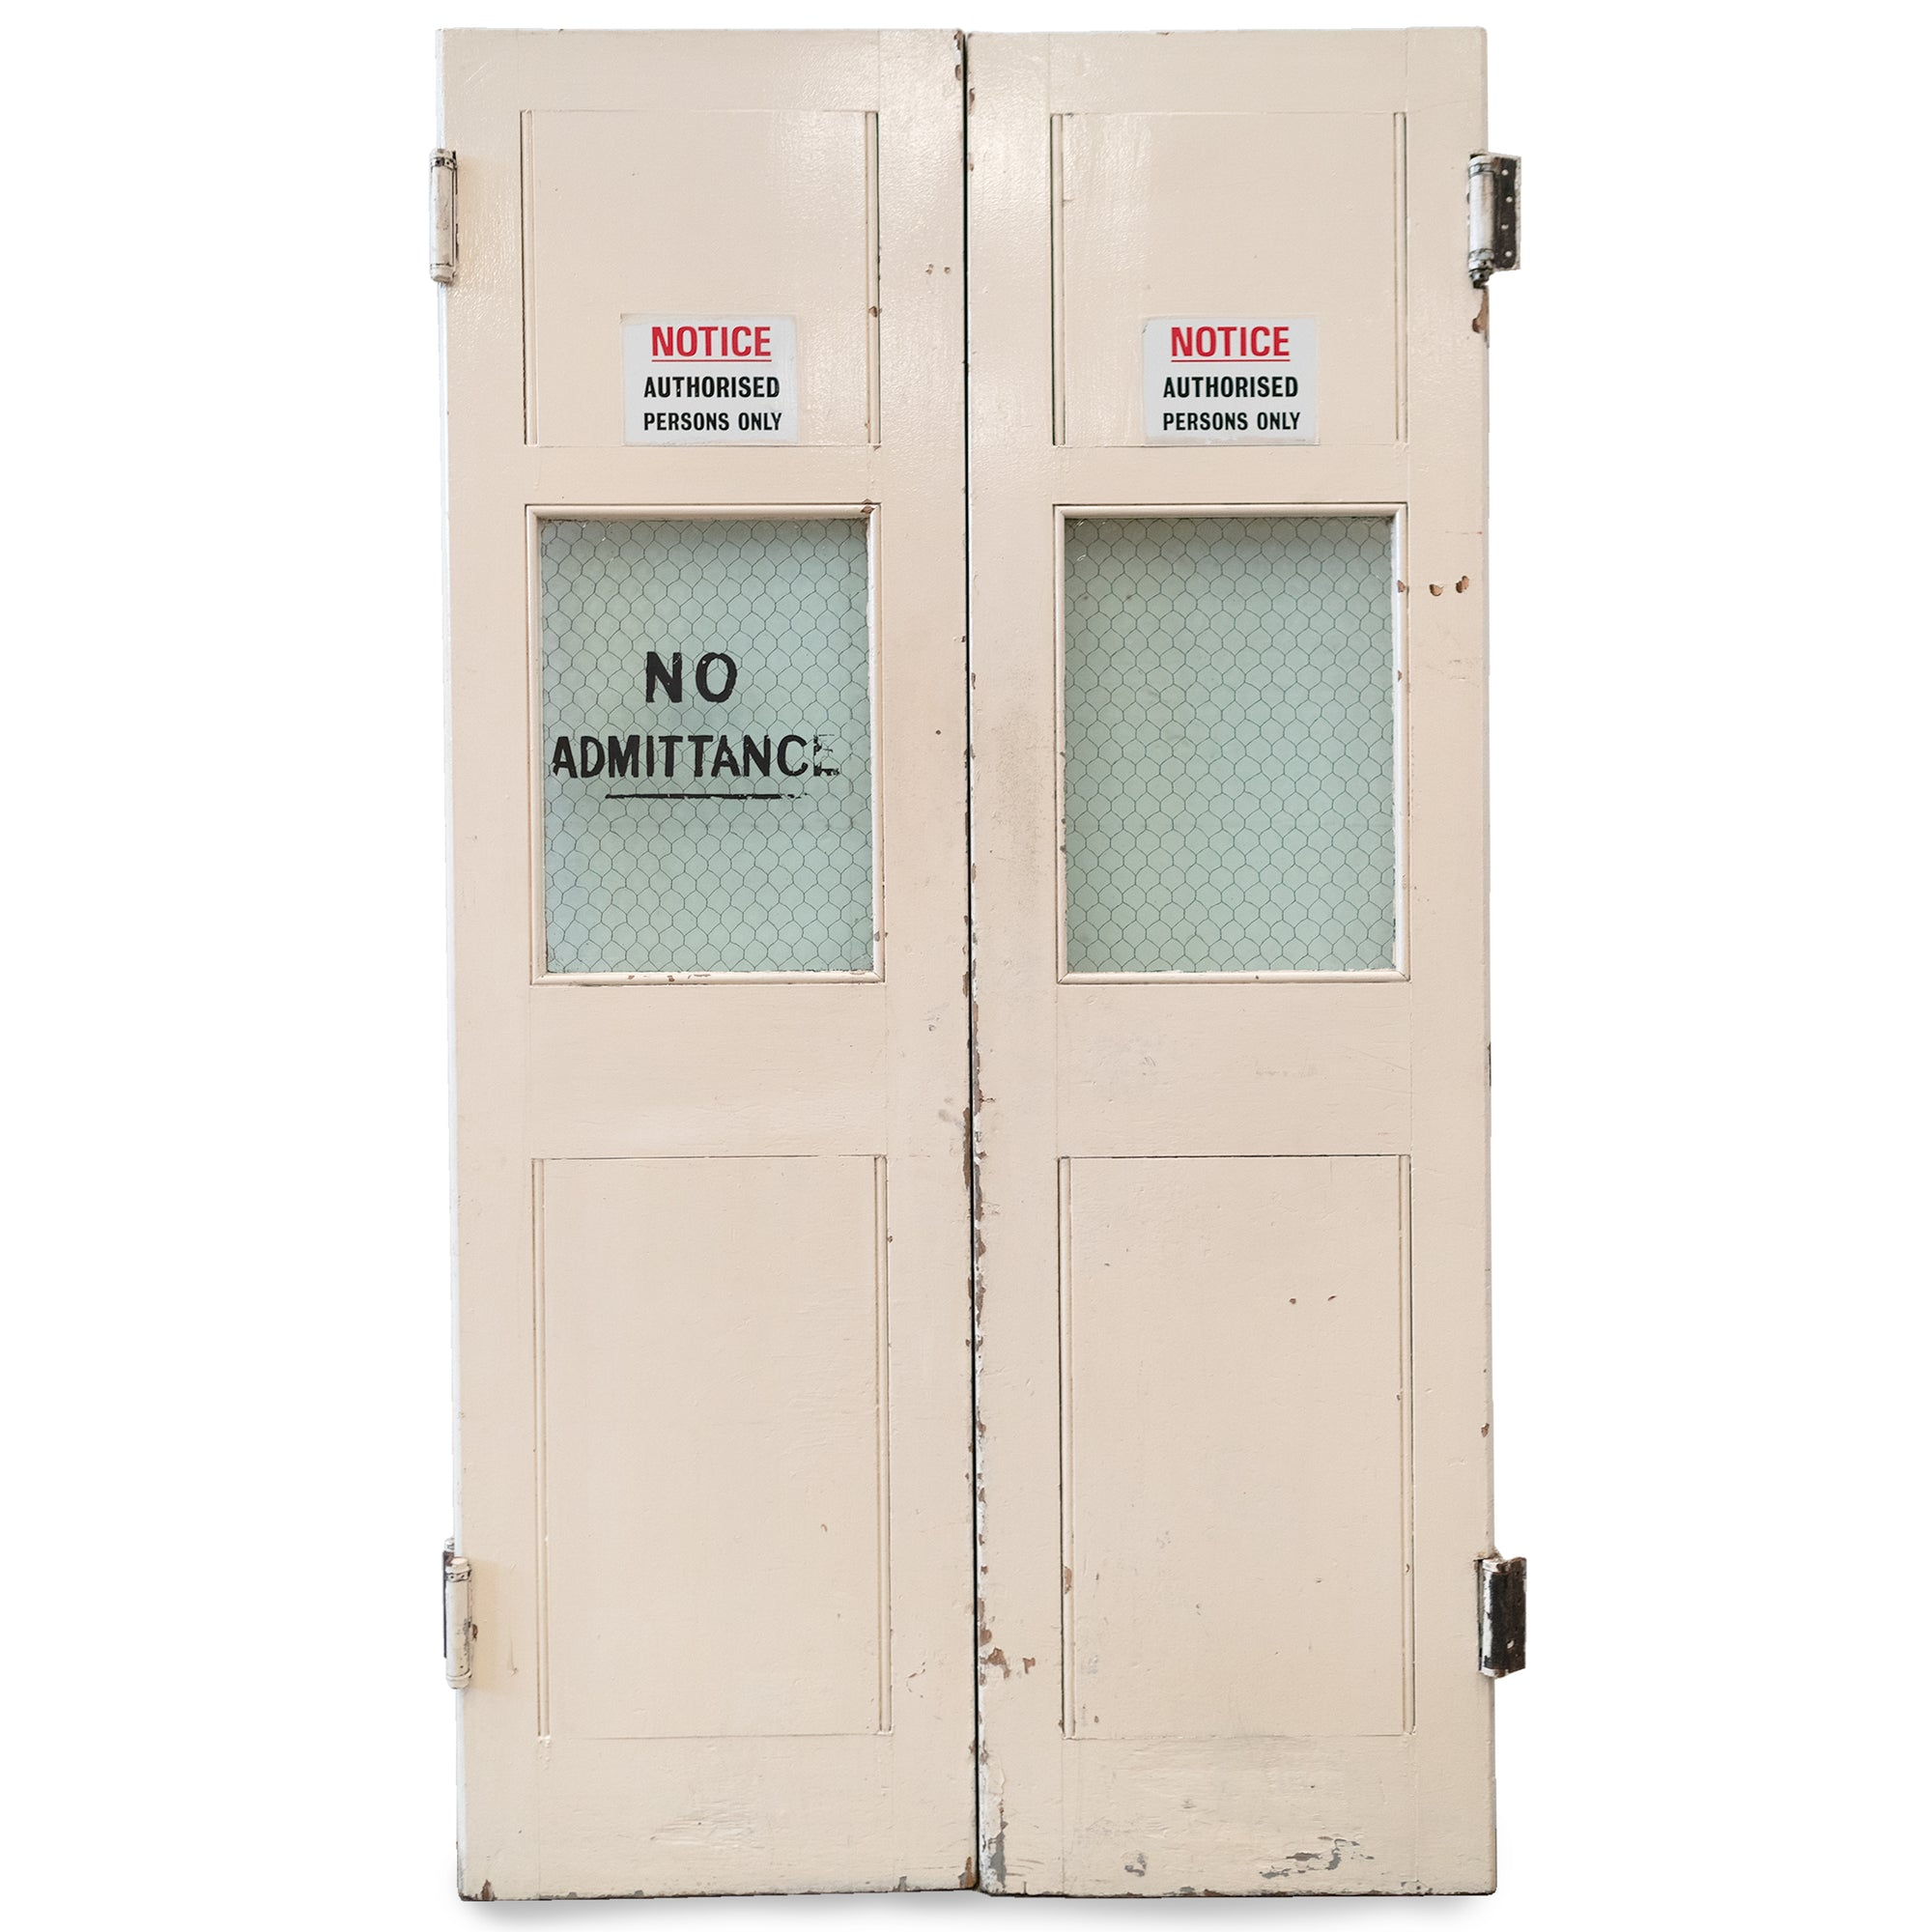 Glazed Emergency Exit Warehouse Double Doors 212cm x 117cm | The Architectural Forum